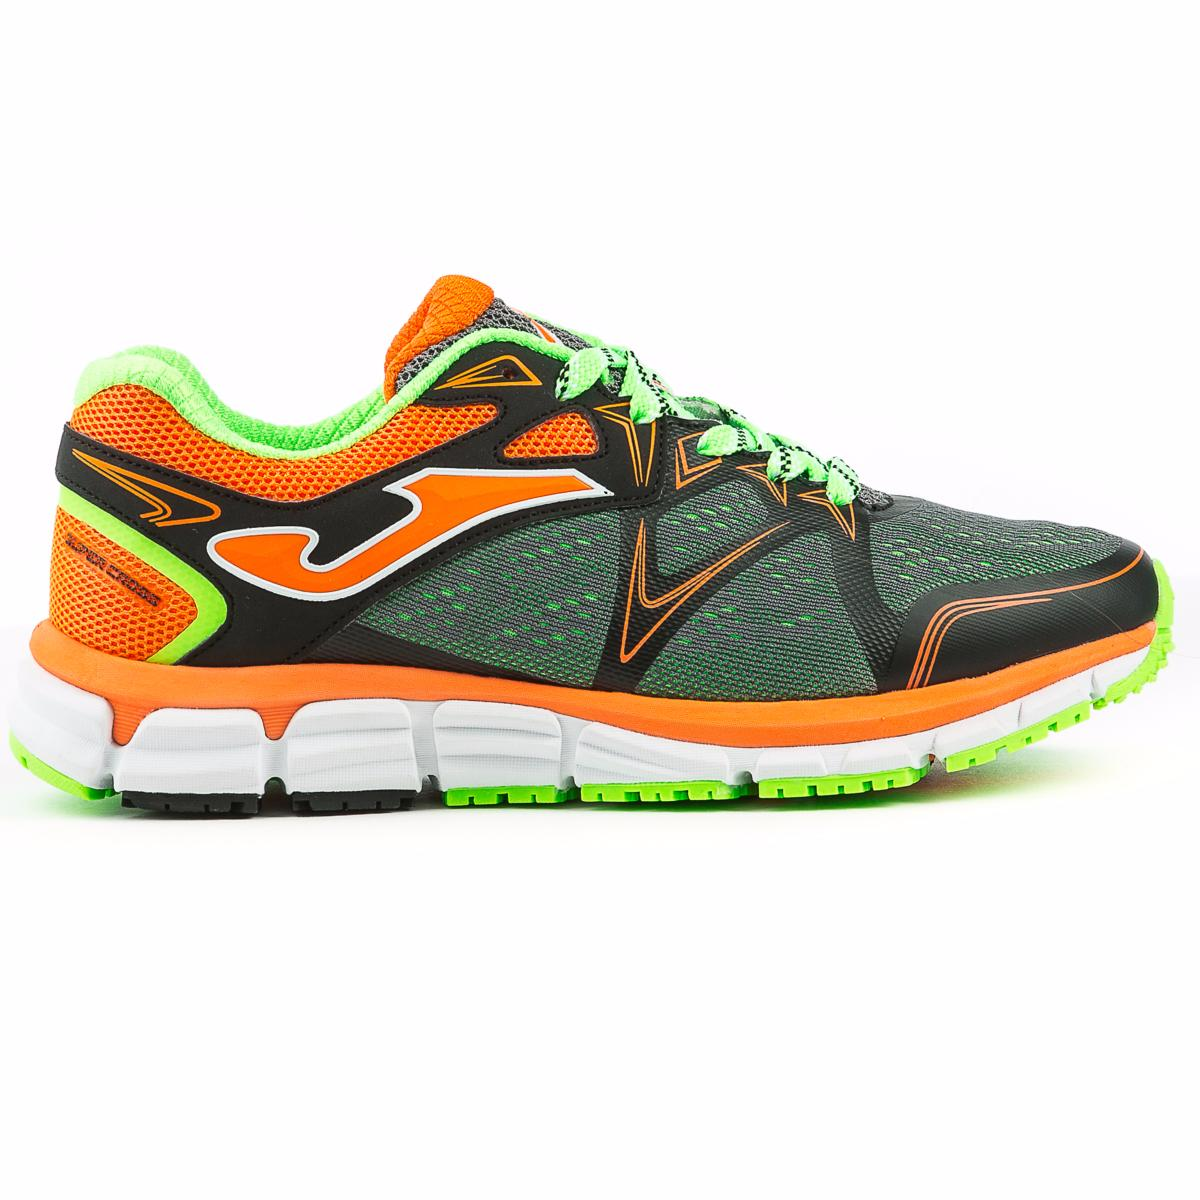 Chaussures homme Running Joma Super Cross jOhP753fNg